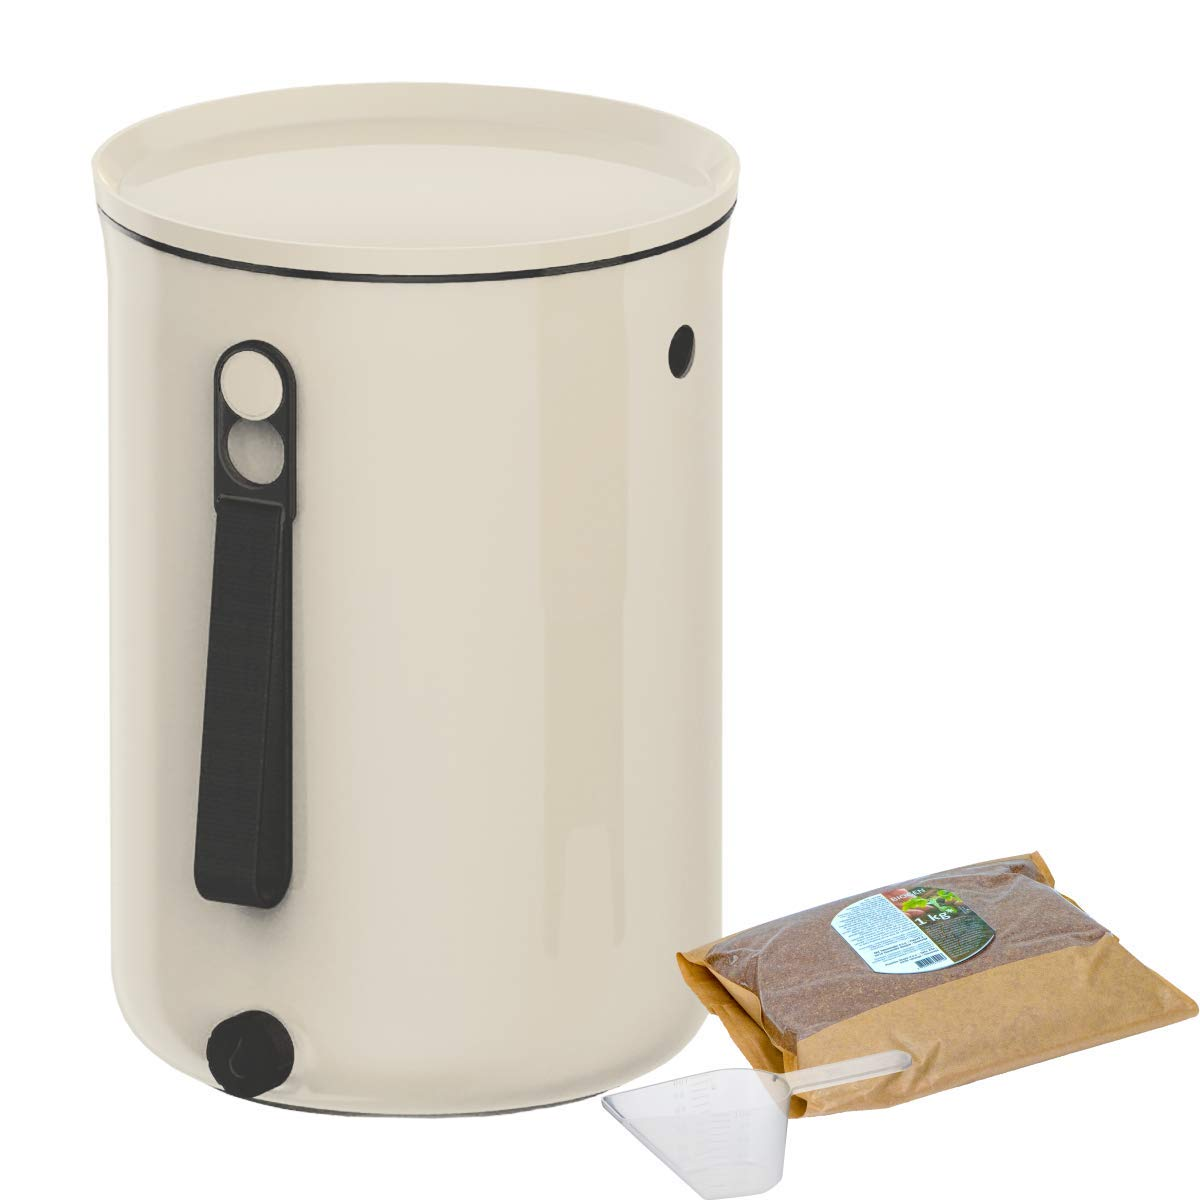 Skaza Bokashi Organko 2 (9.6 L) Award-winning Kitchen Composter made from Recycled Plastic | Starter set for kitchen waste and composting | with fermentation activator 1 kg (Cream-White)